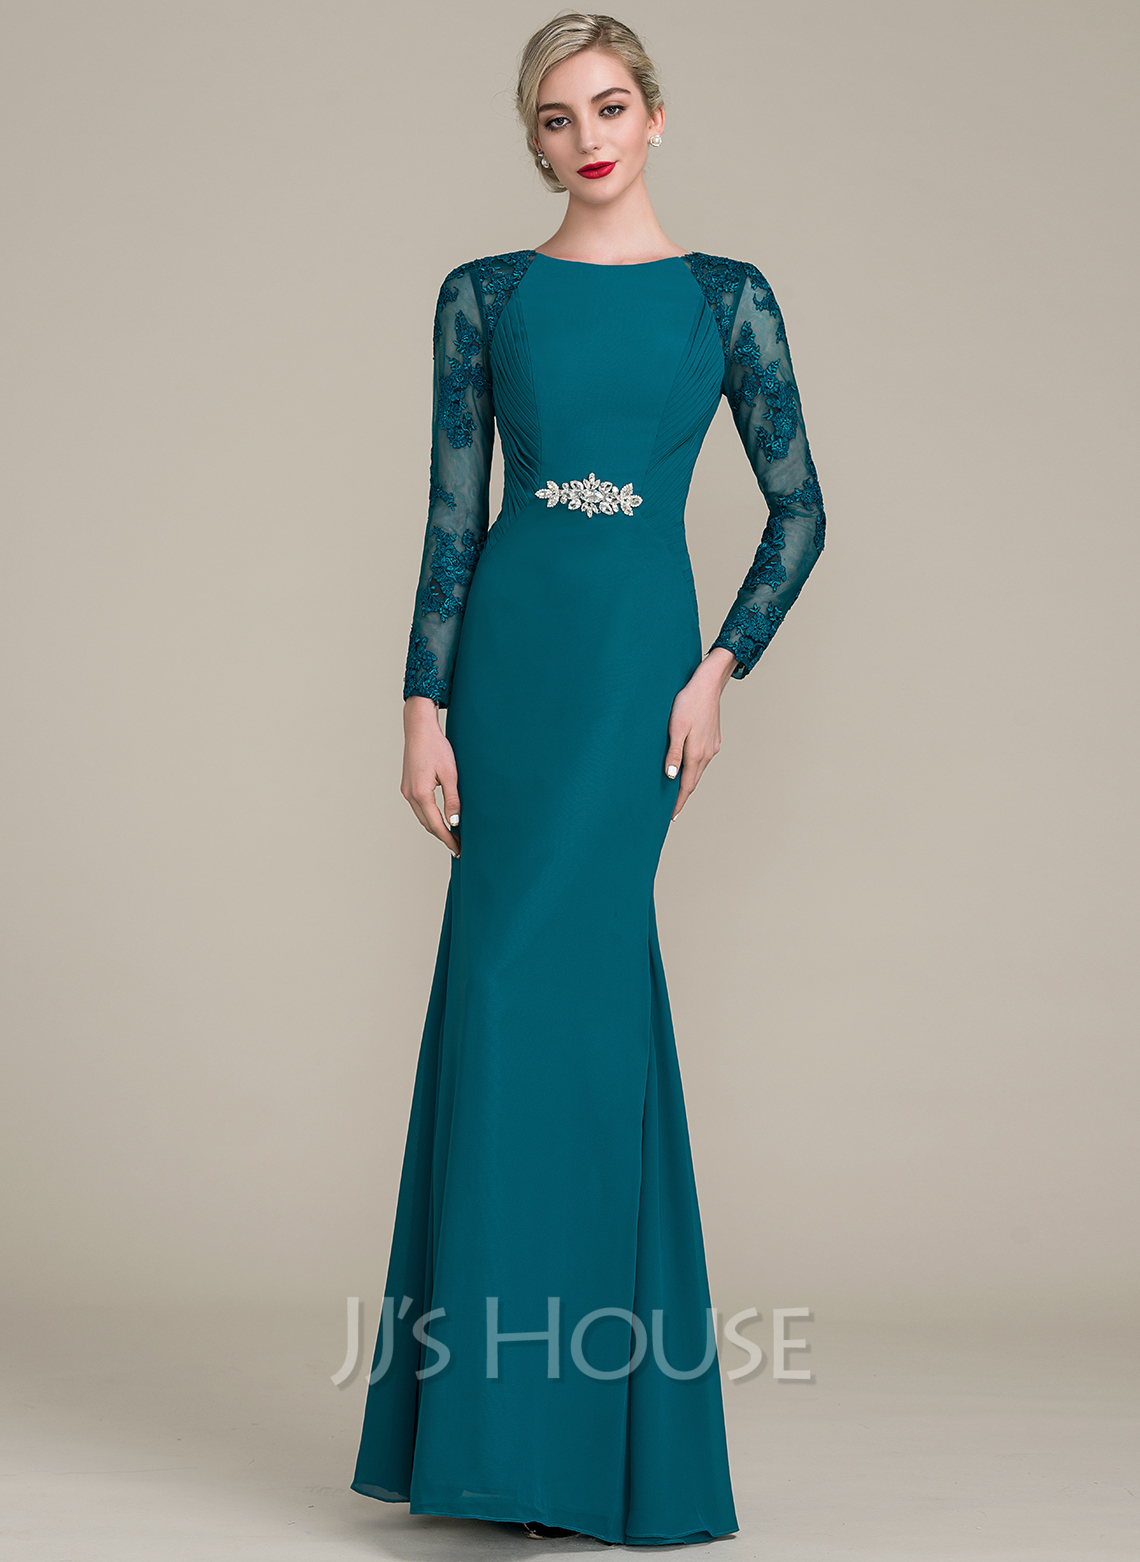 Trumpet/Mermaid Scoop Neck Floor-Length Chiffon Lace Mother of the Bride Dress With Ruffle Beading